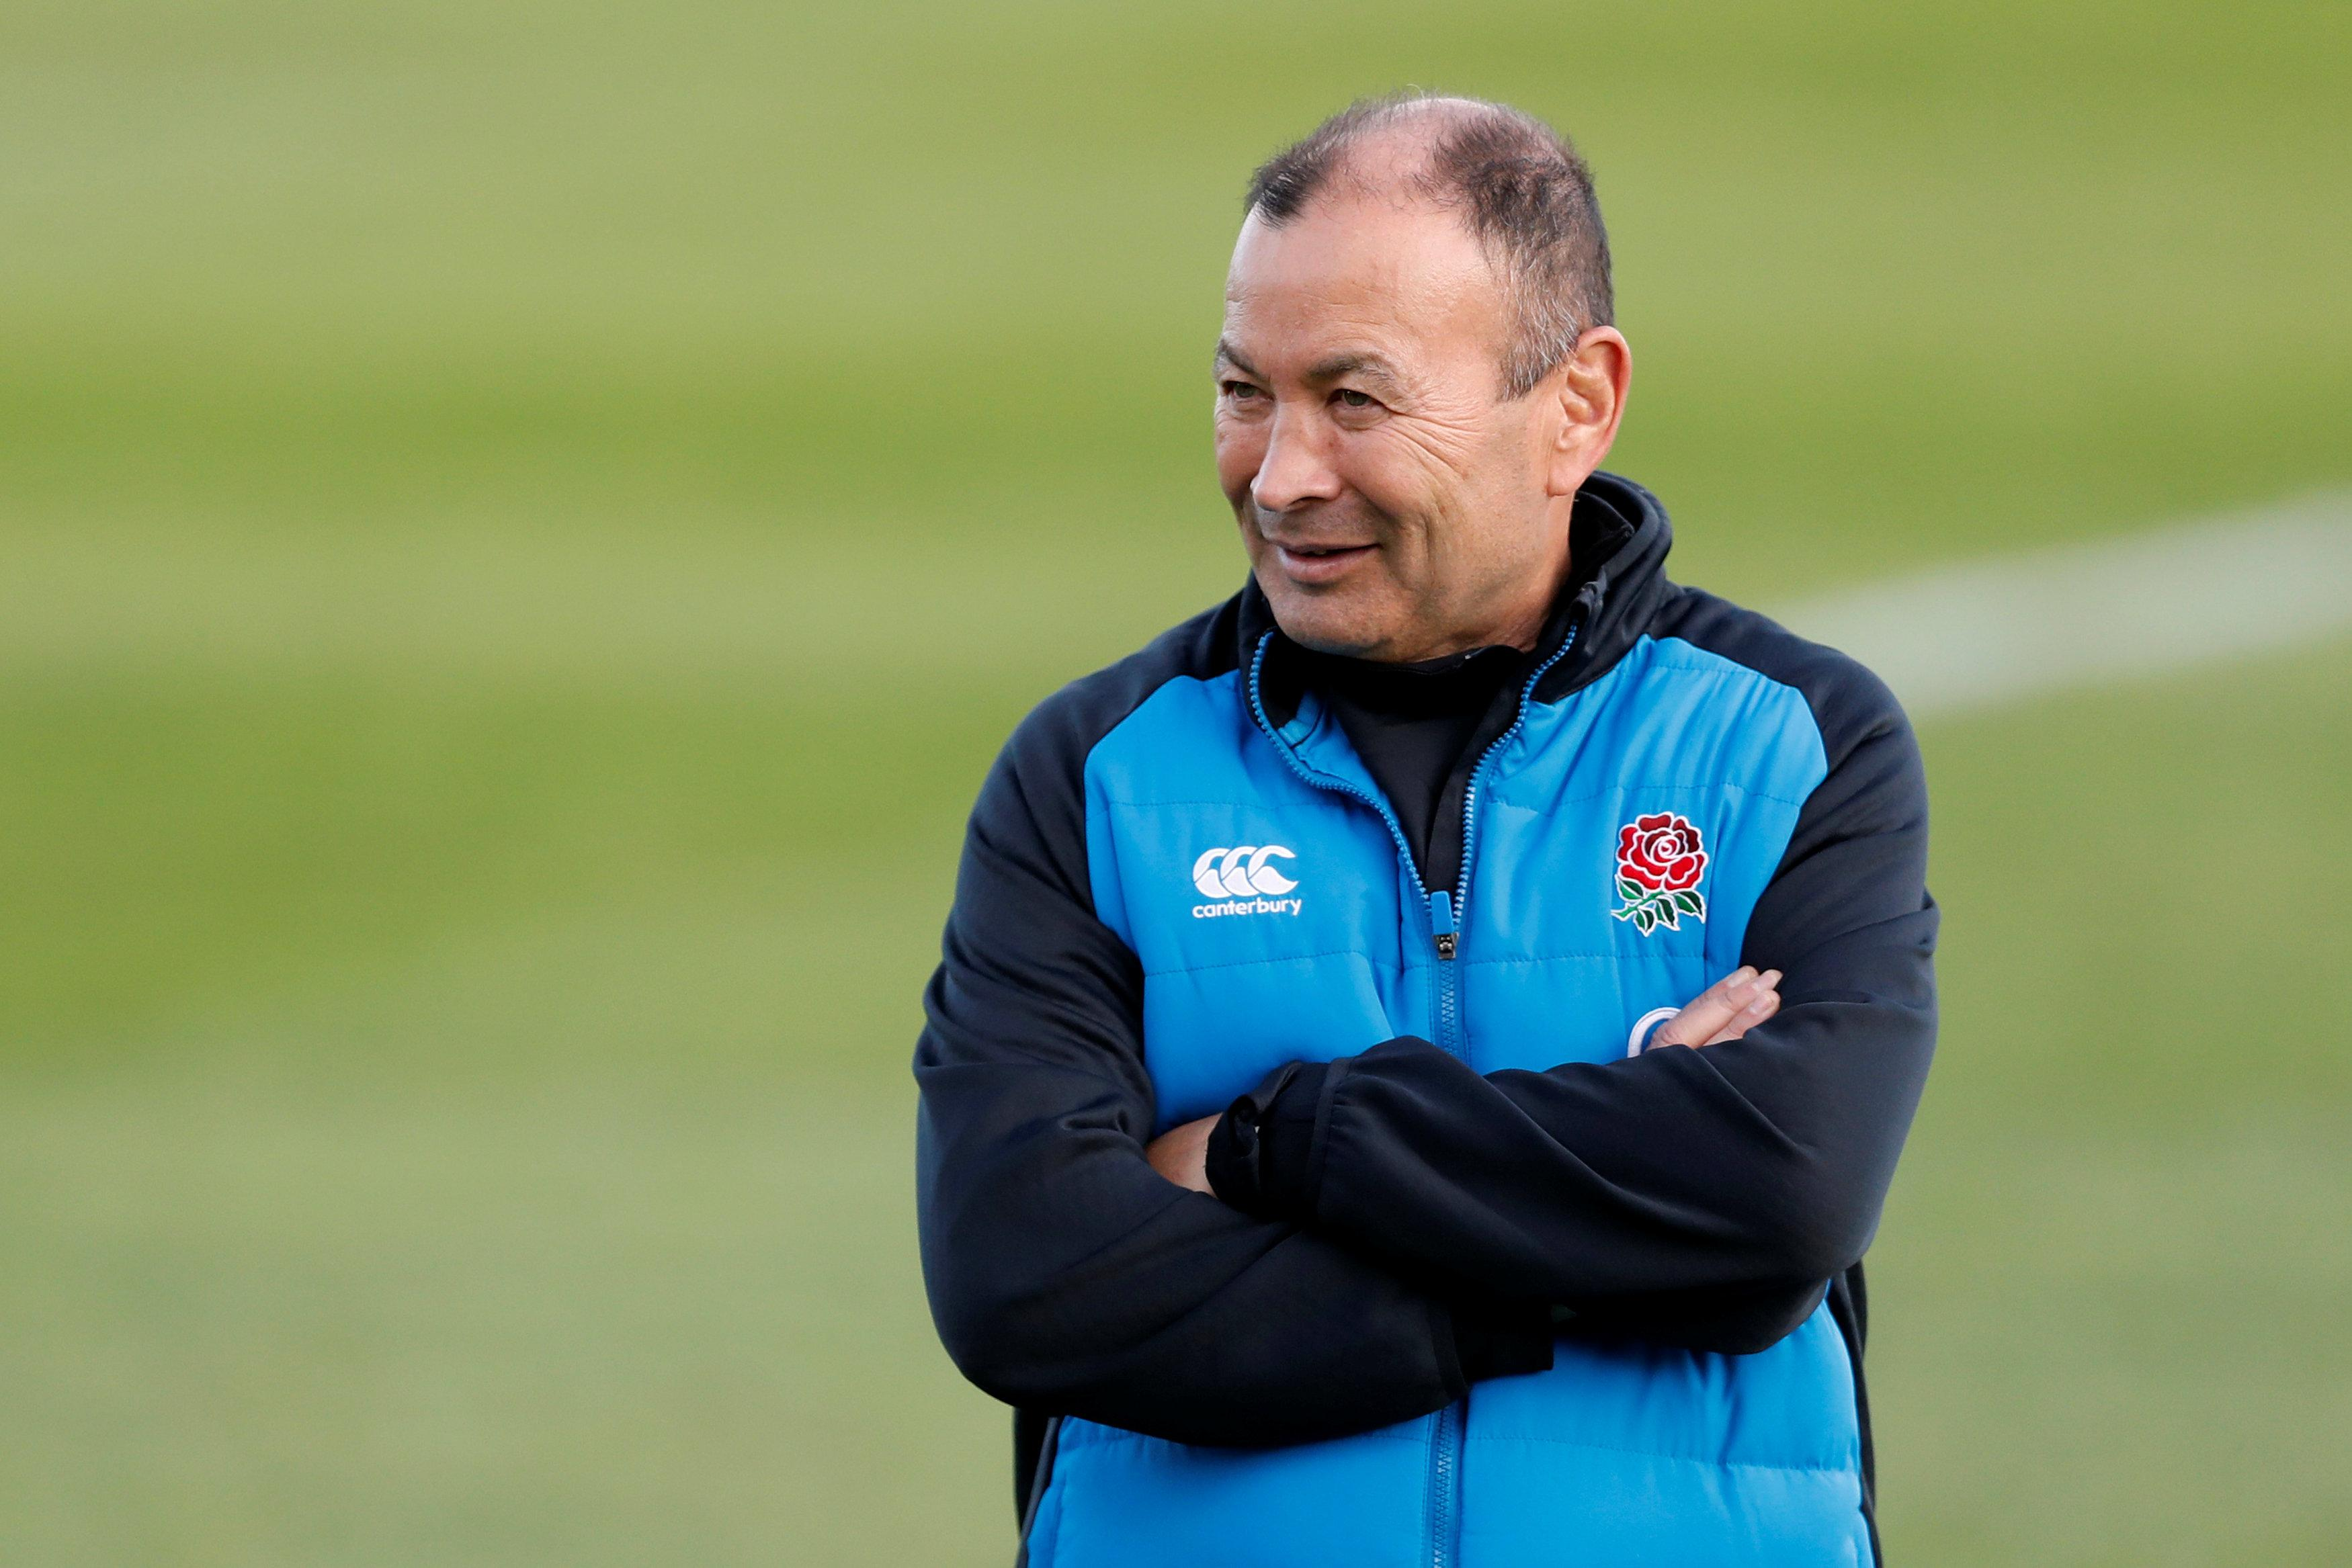 Eddie Jones has controversially named his England squad ahead of the upcoming fixtures